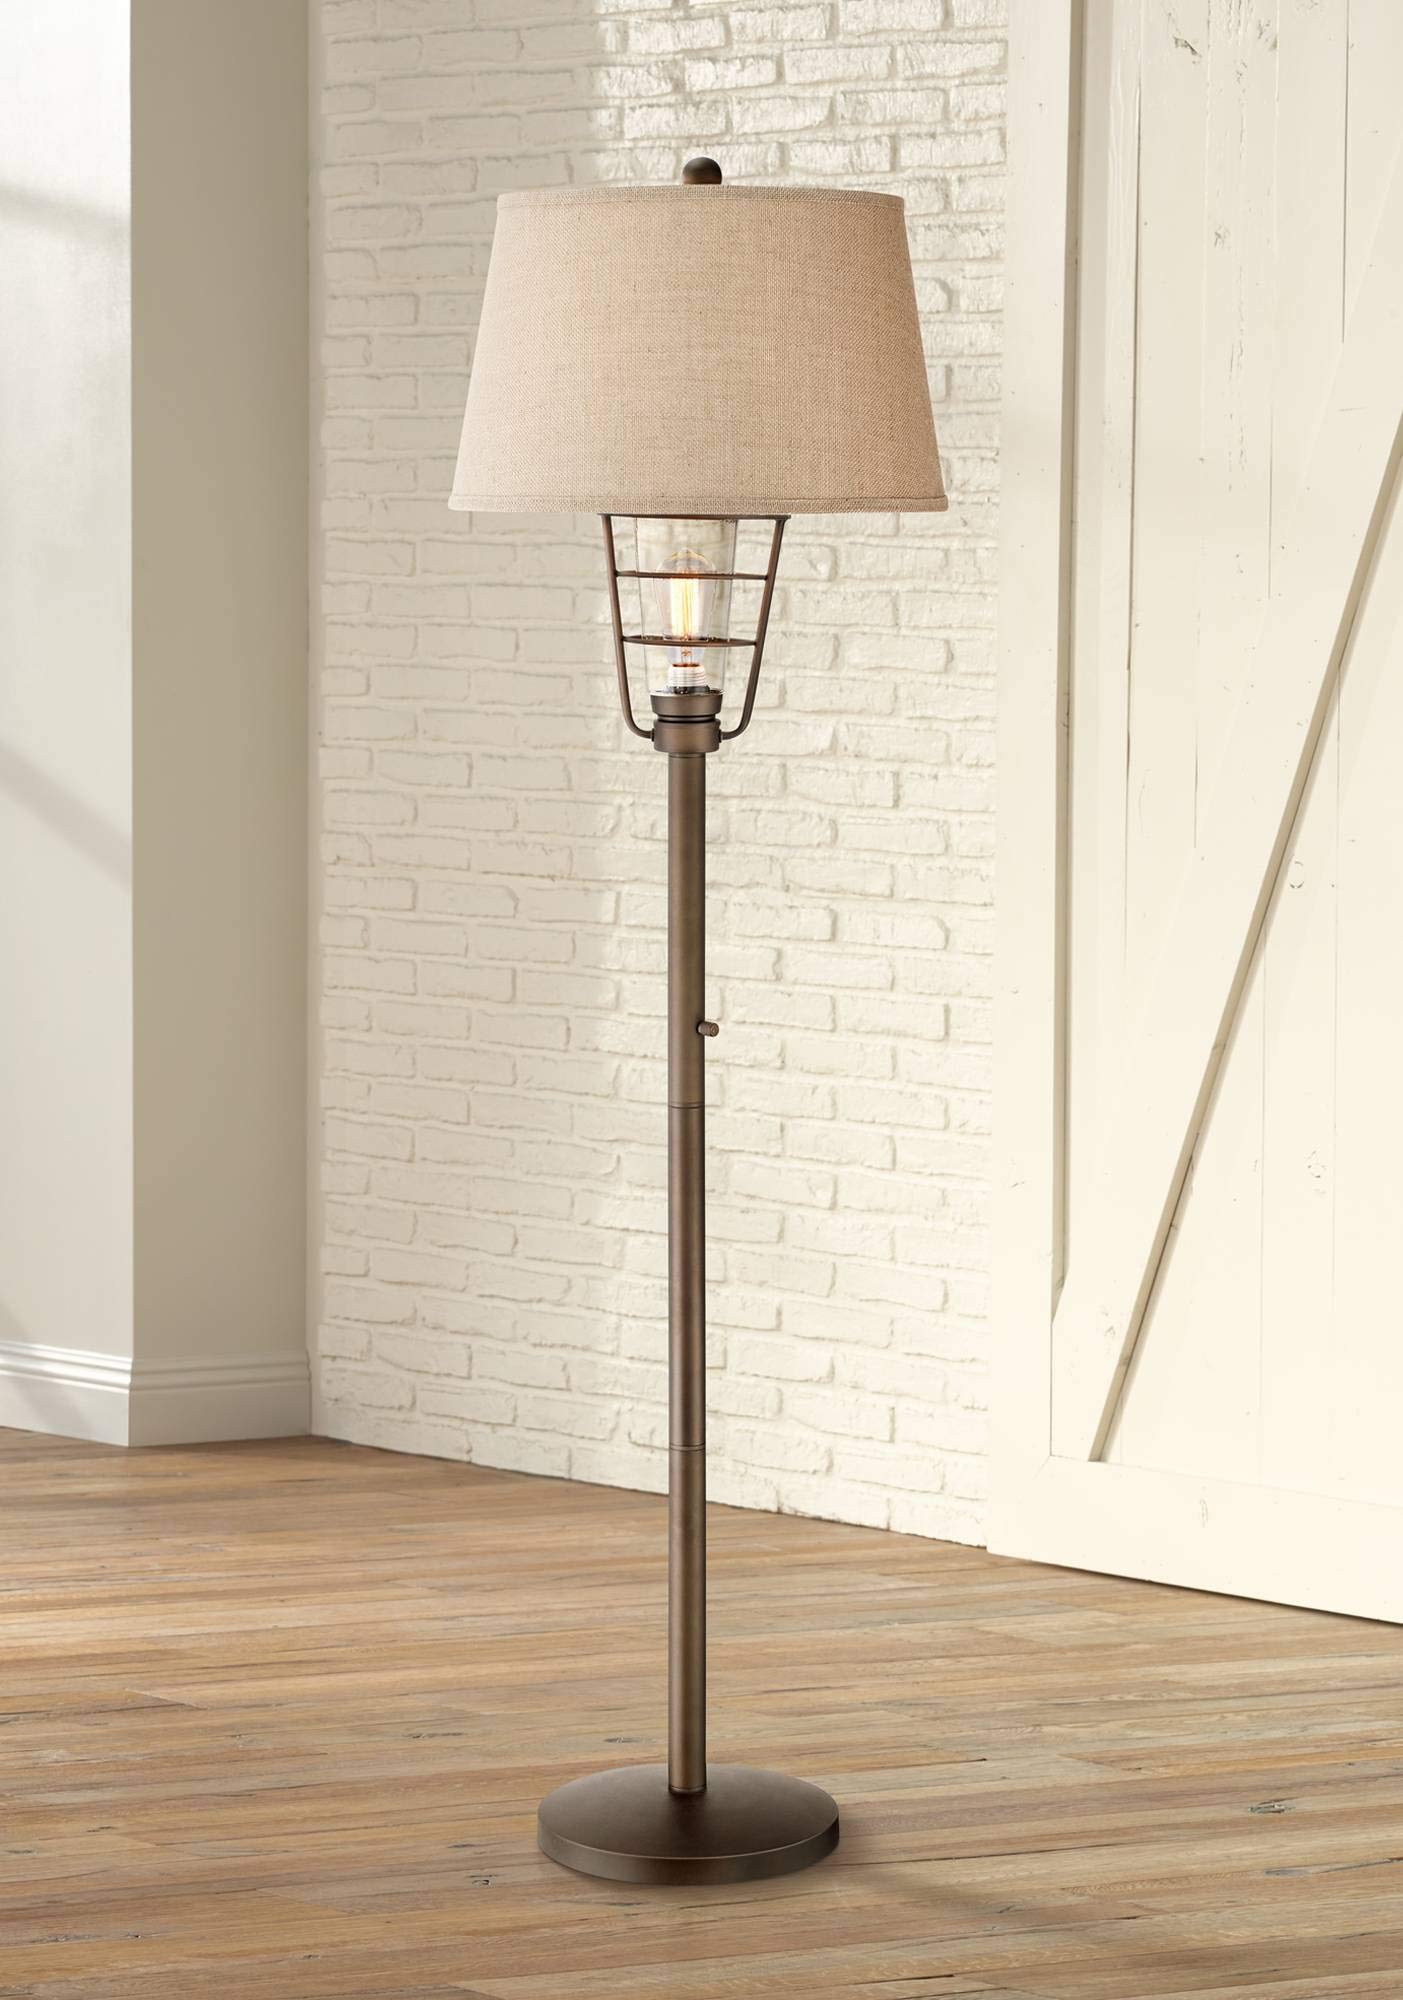 Industrial Floor Lamp with Nightlight LED Edison Bronze Burlap Drum Shade for Living Room Reading Bedroom - Franklin Iron Works